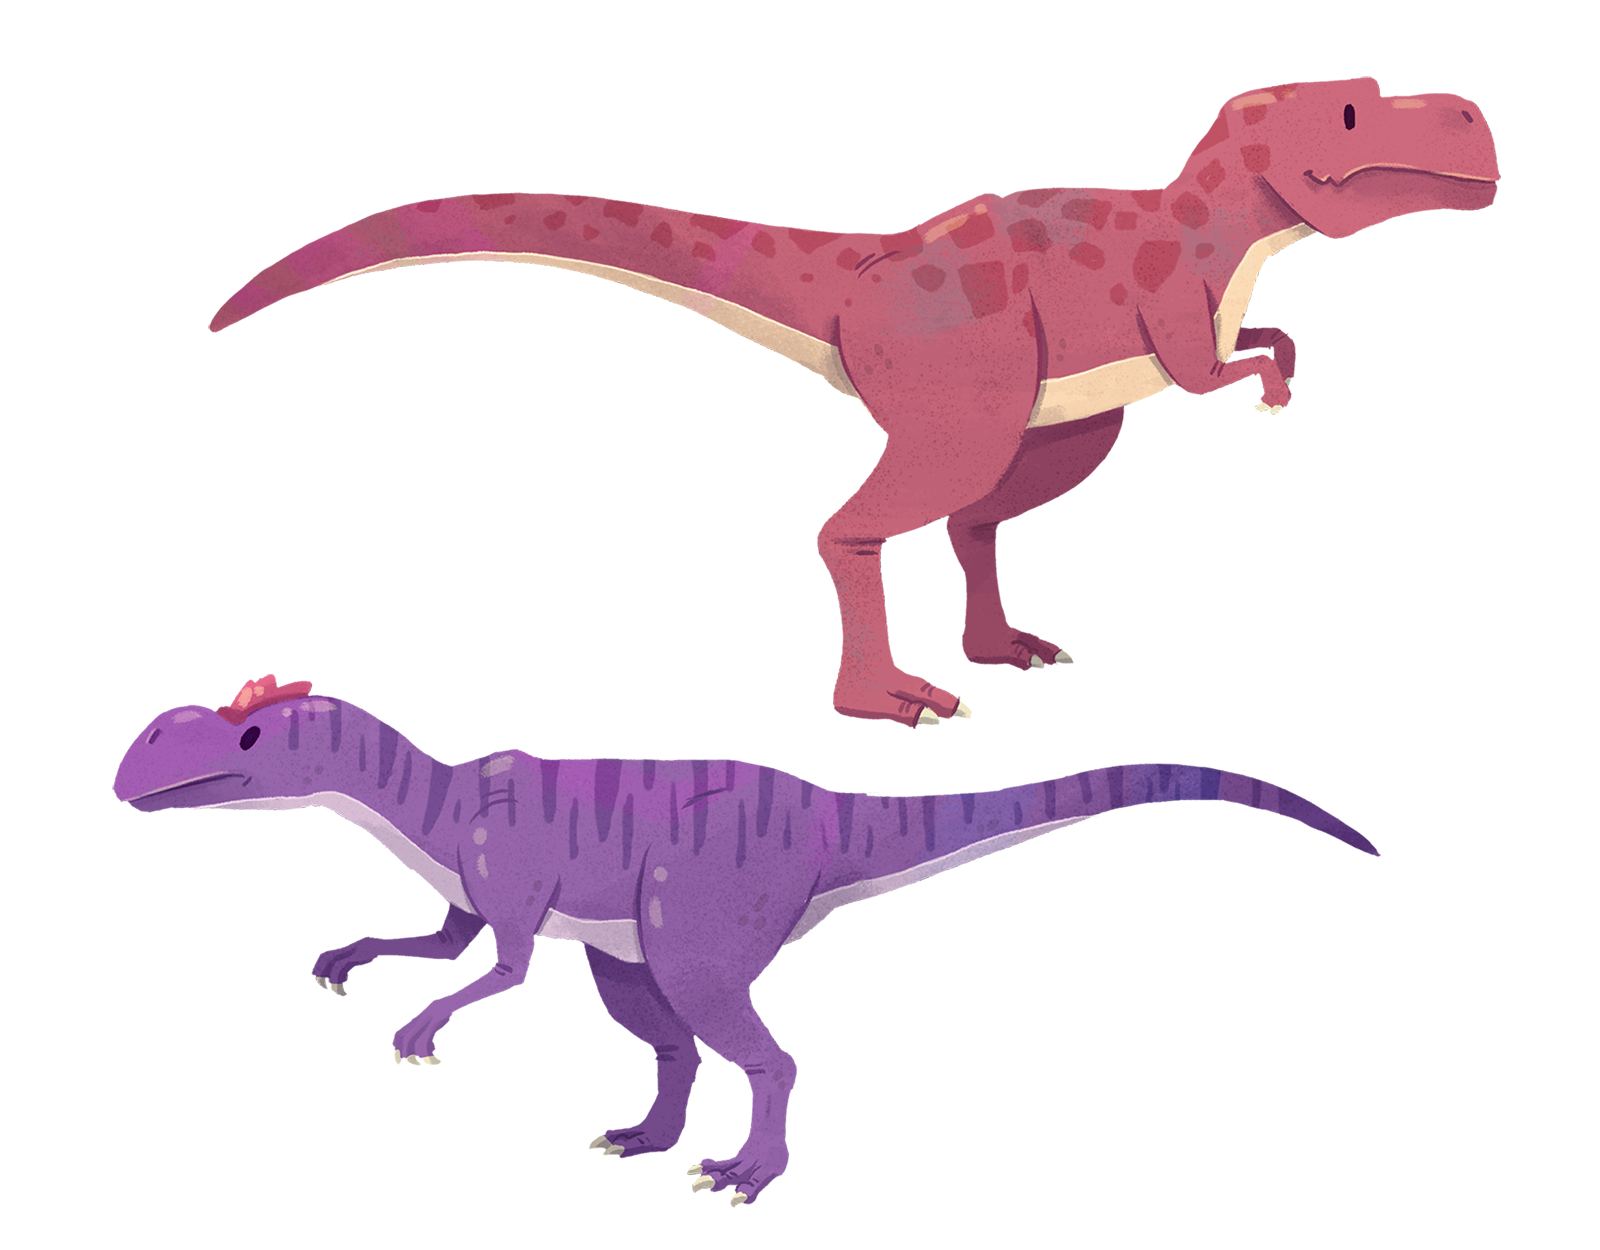 Dinosaurs_02.png